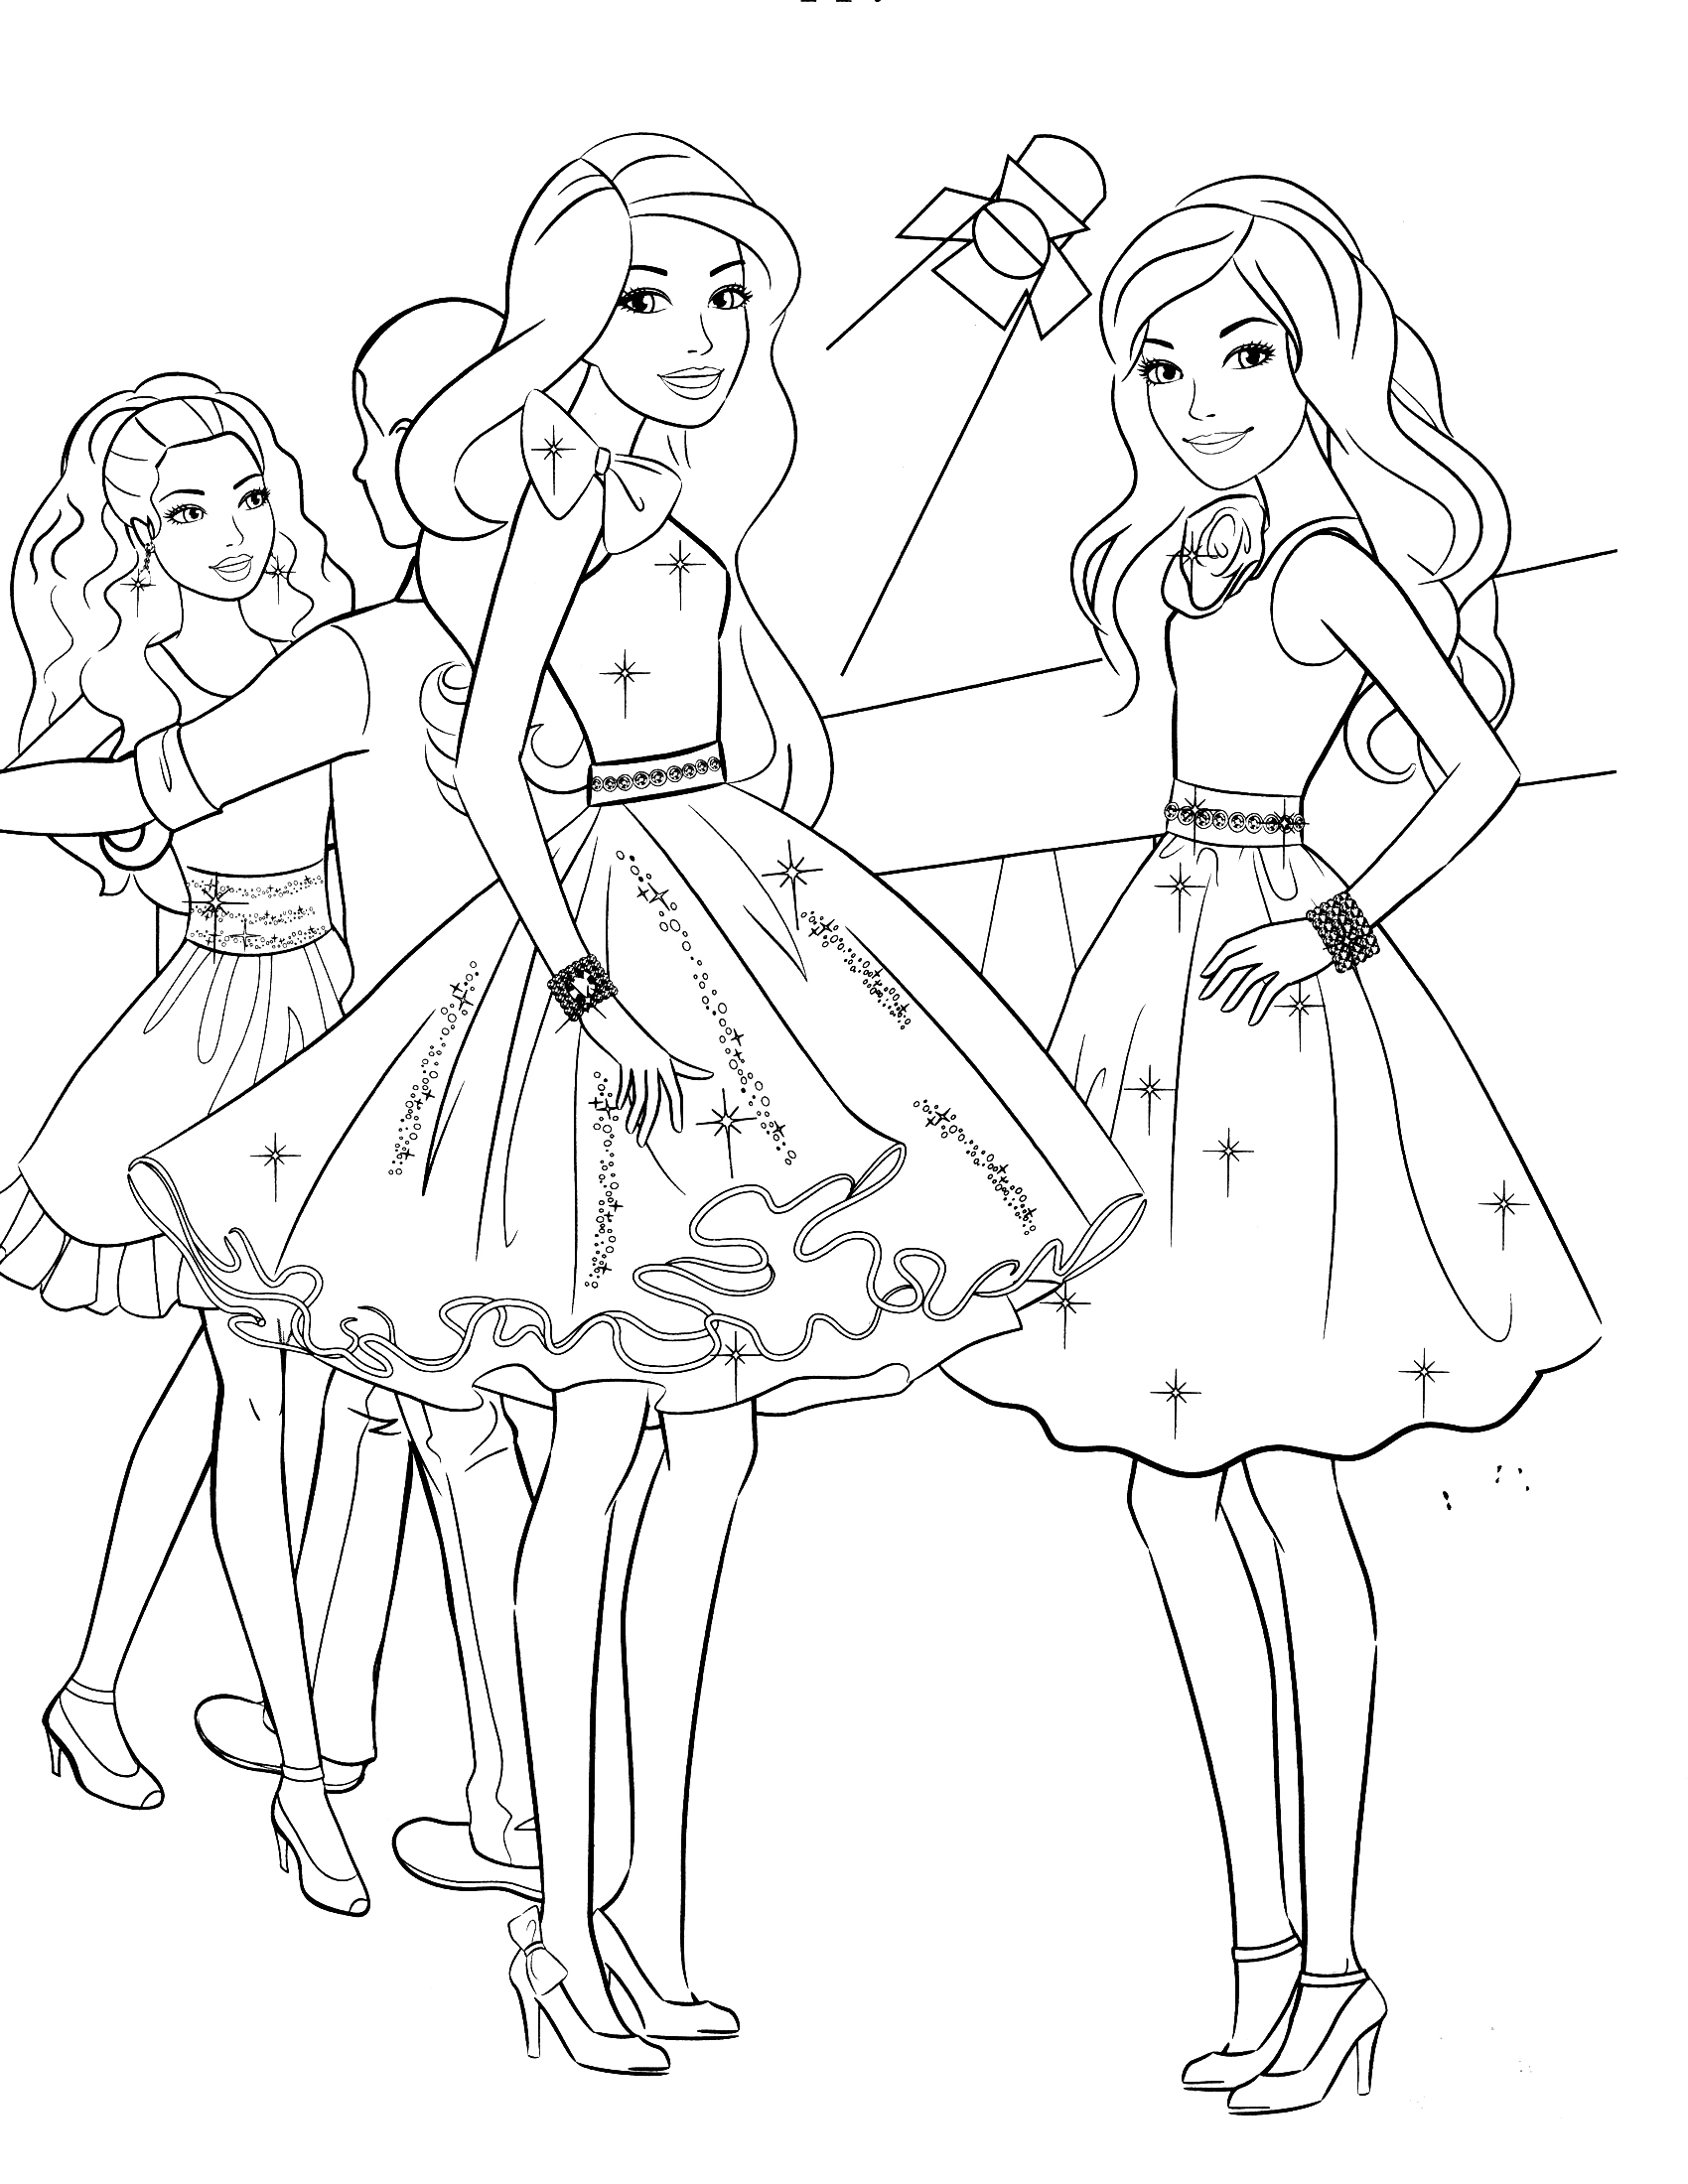 barbie painting pages barbie coloring pages coloring pages for kids pages painting barbie